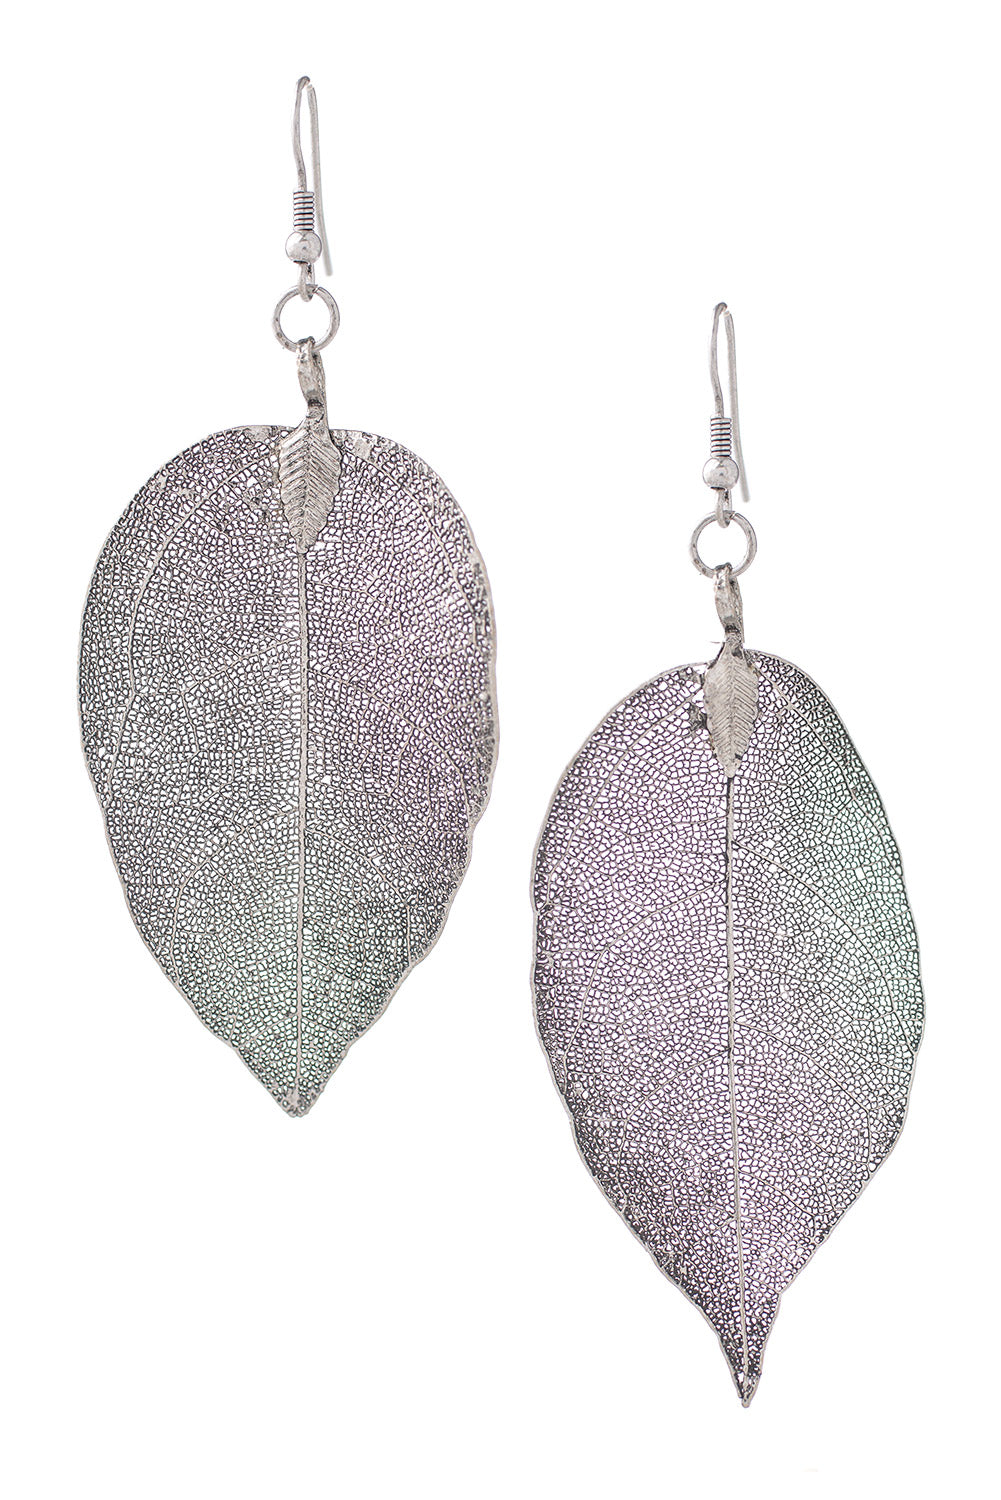 Type 2 Leaf From The Book Of Time Earrings